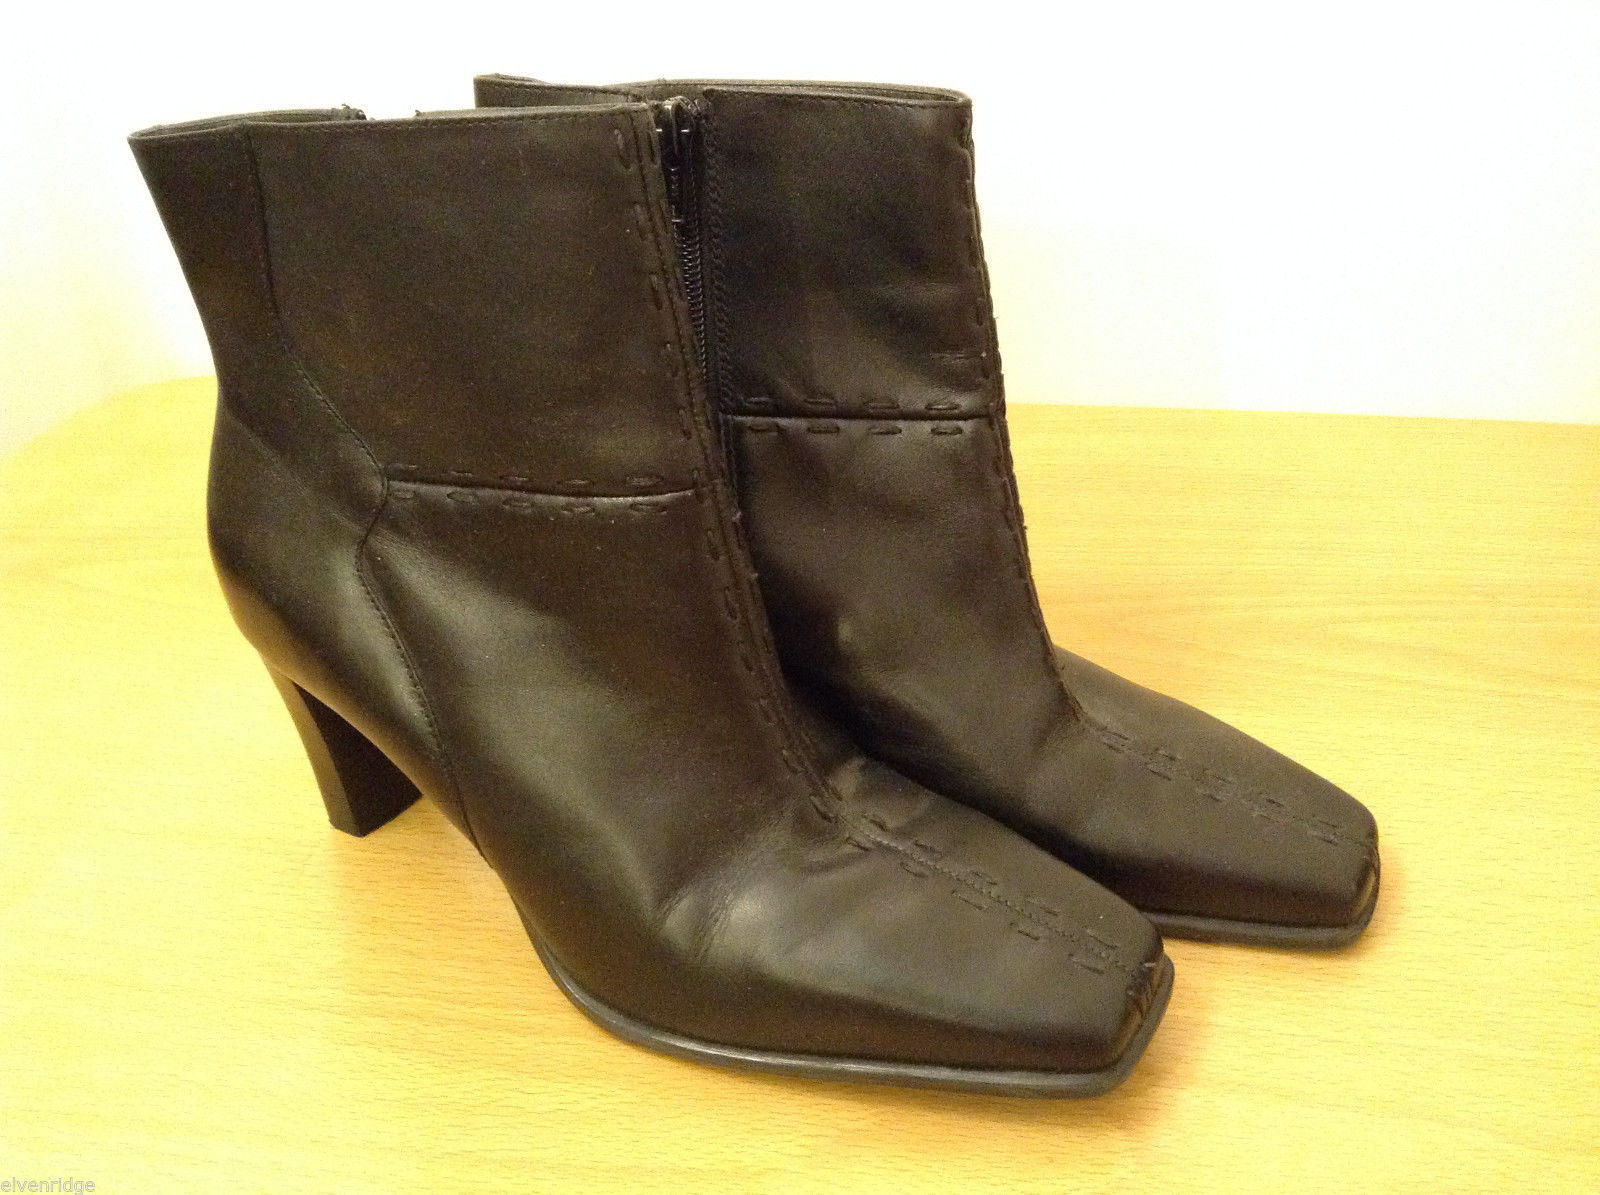 "Markon Women Size 8 Whitney Booties Boots Black Mid-Calf Leather Upper 3"" Heel"